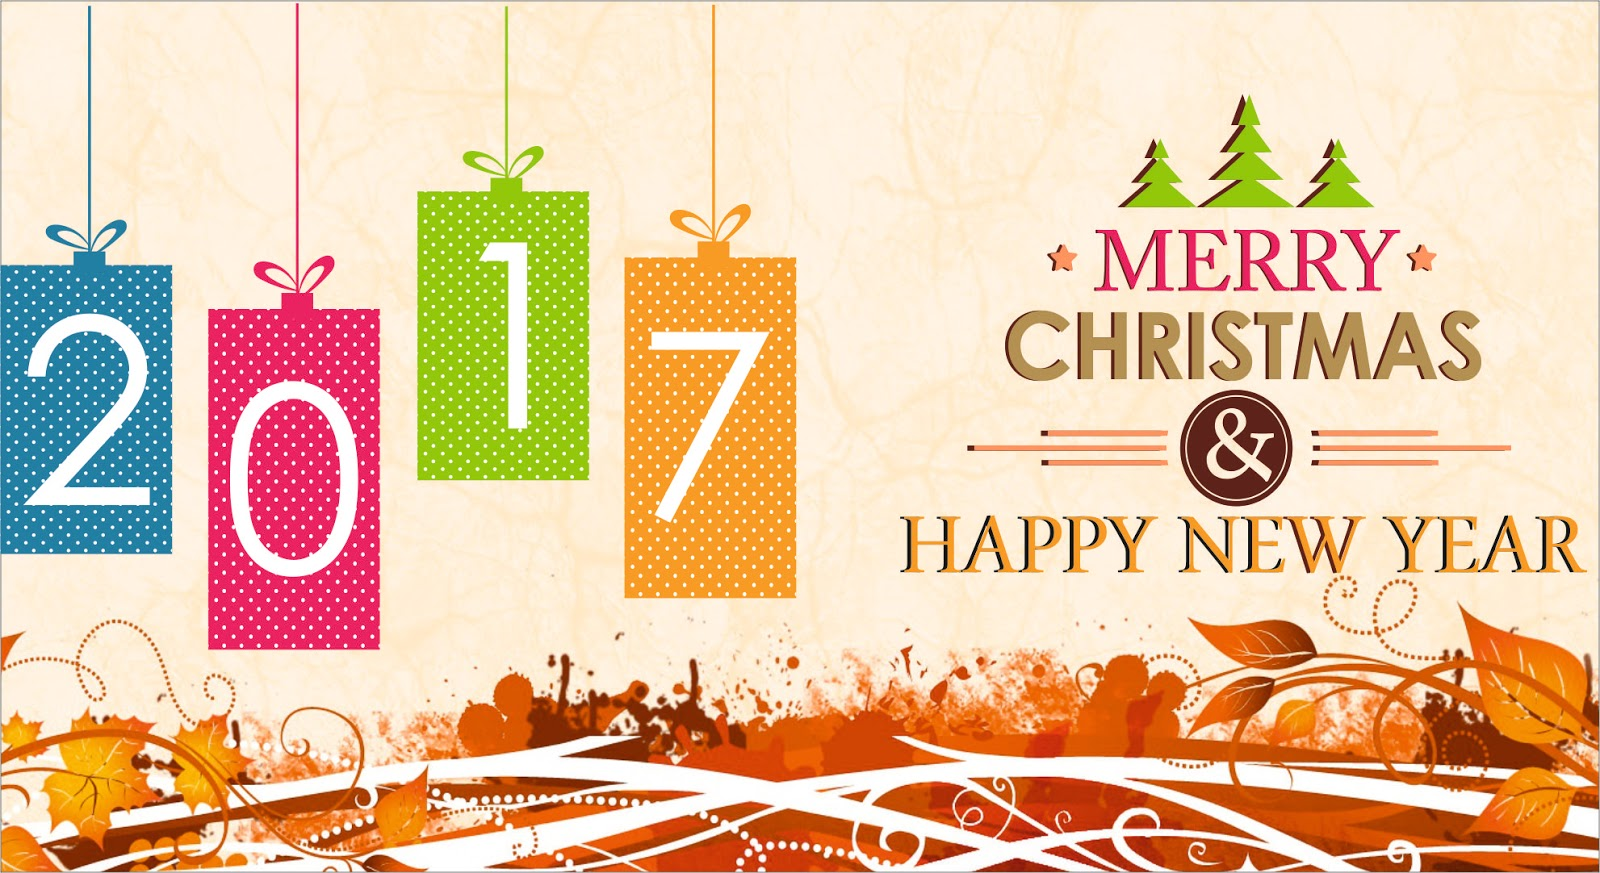 Merry-christmas-and-happy-new-year-2017